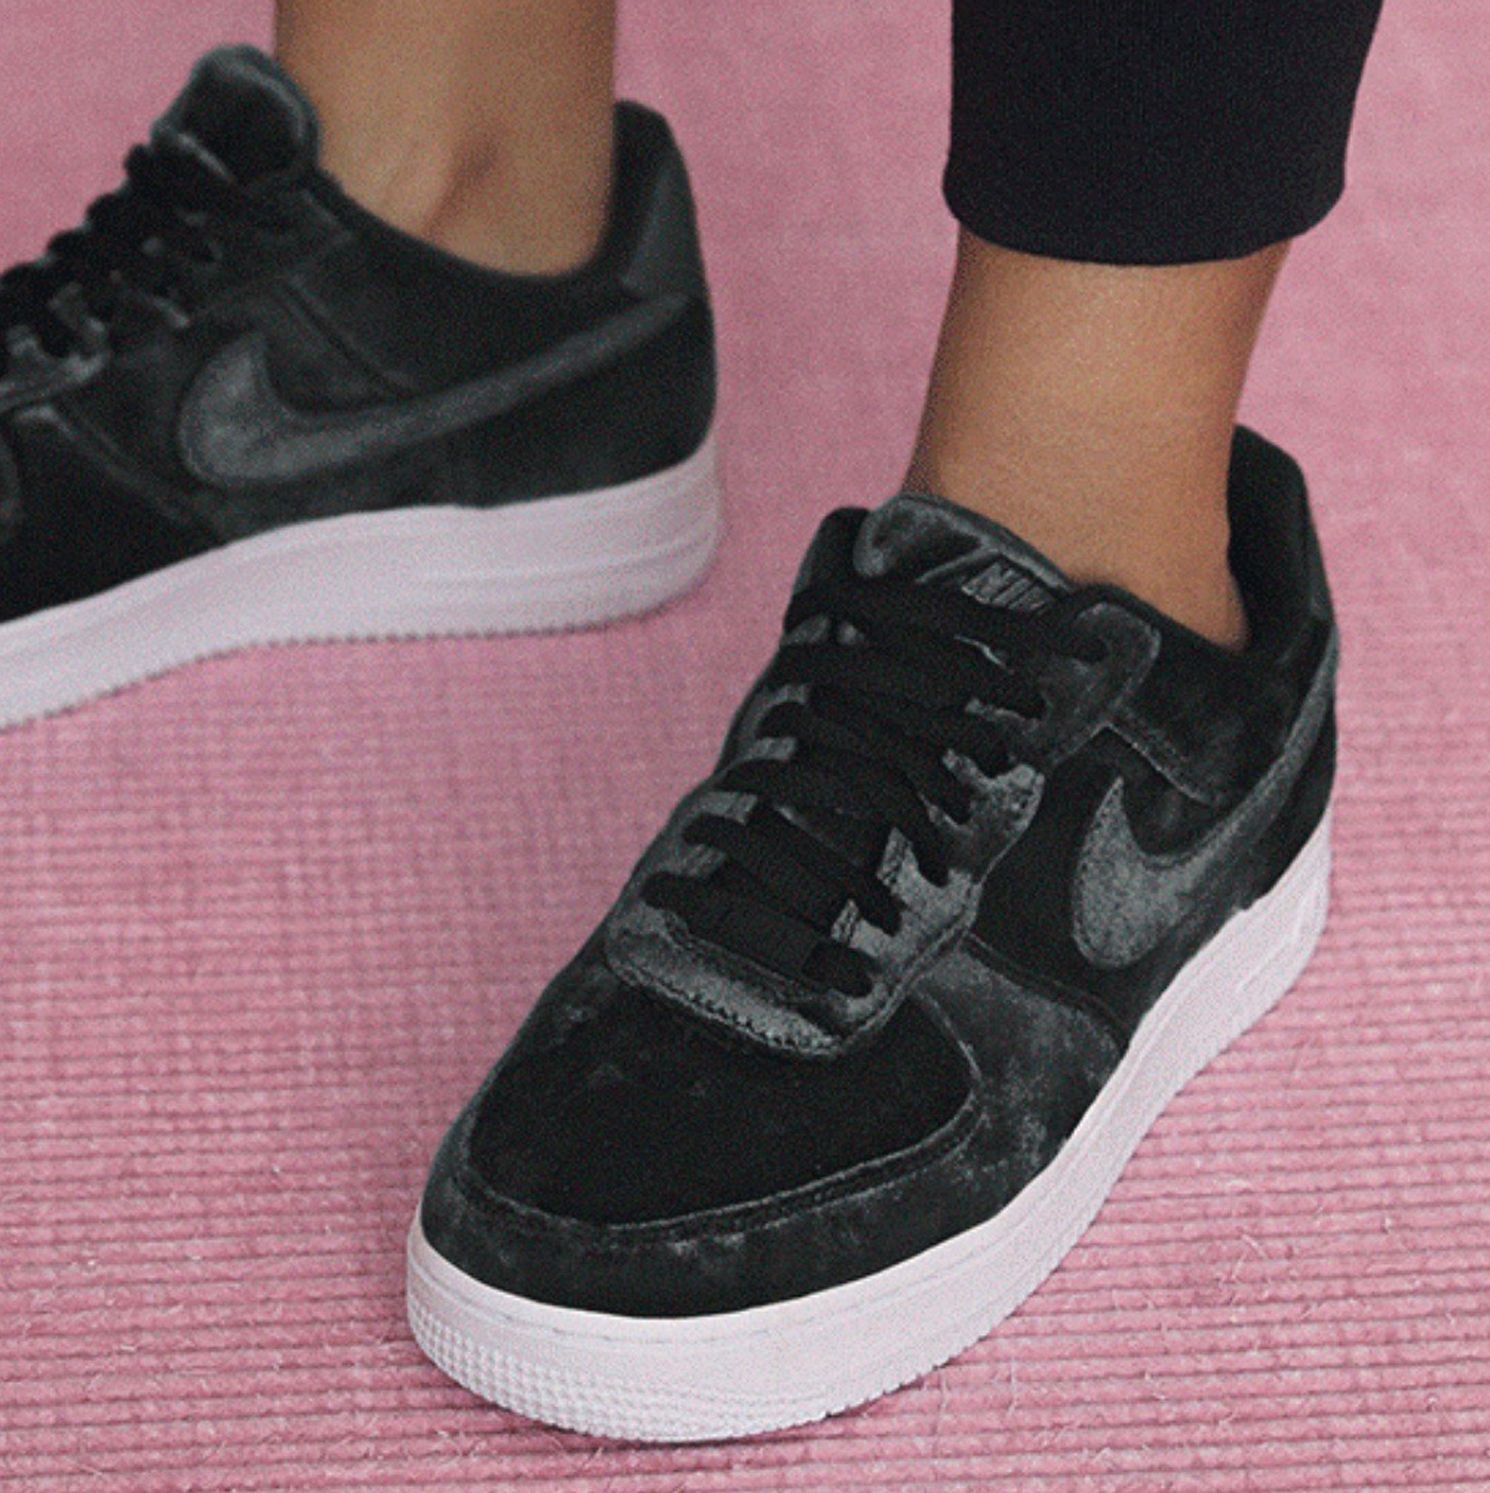 new concept a386a 8b370 Sneakers women - Nike Air Force 1 velvet black